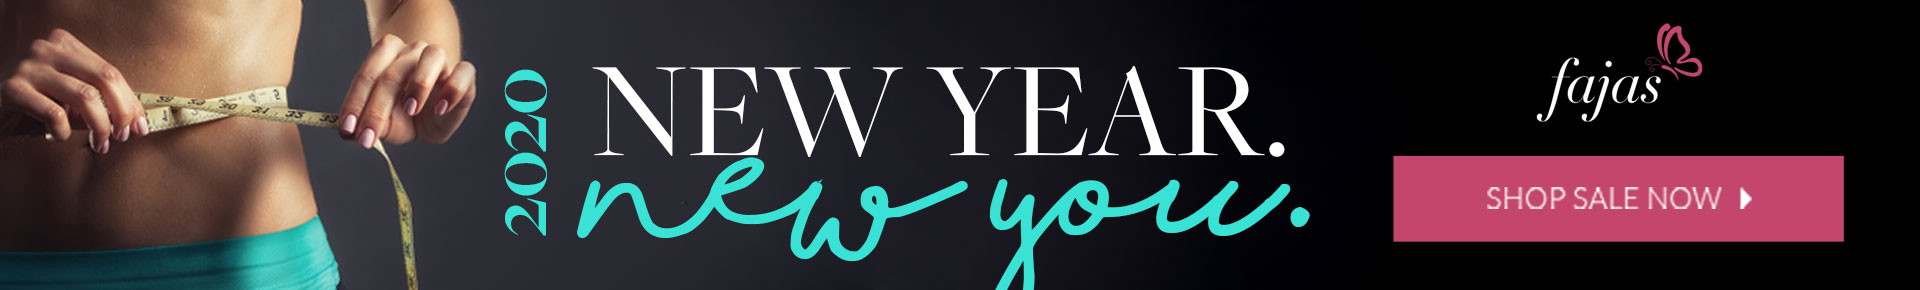 Fajas New Year New You Sale